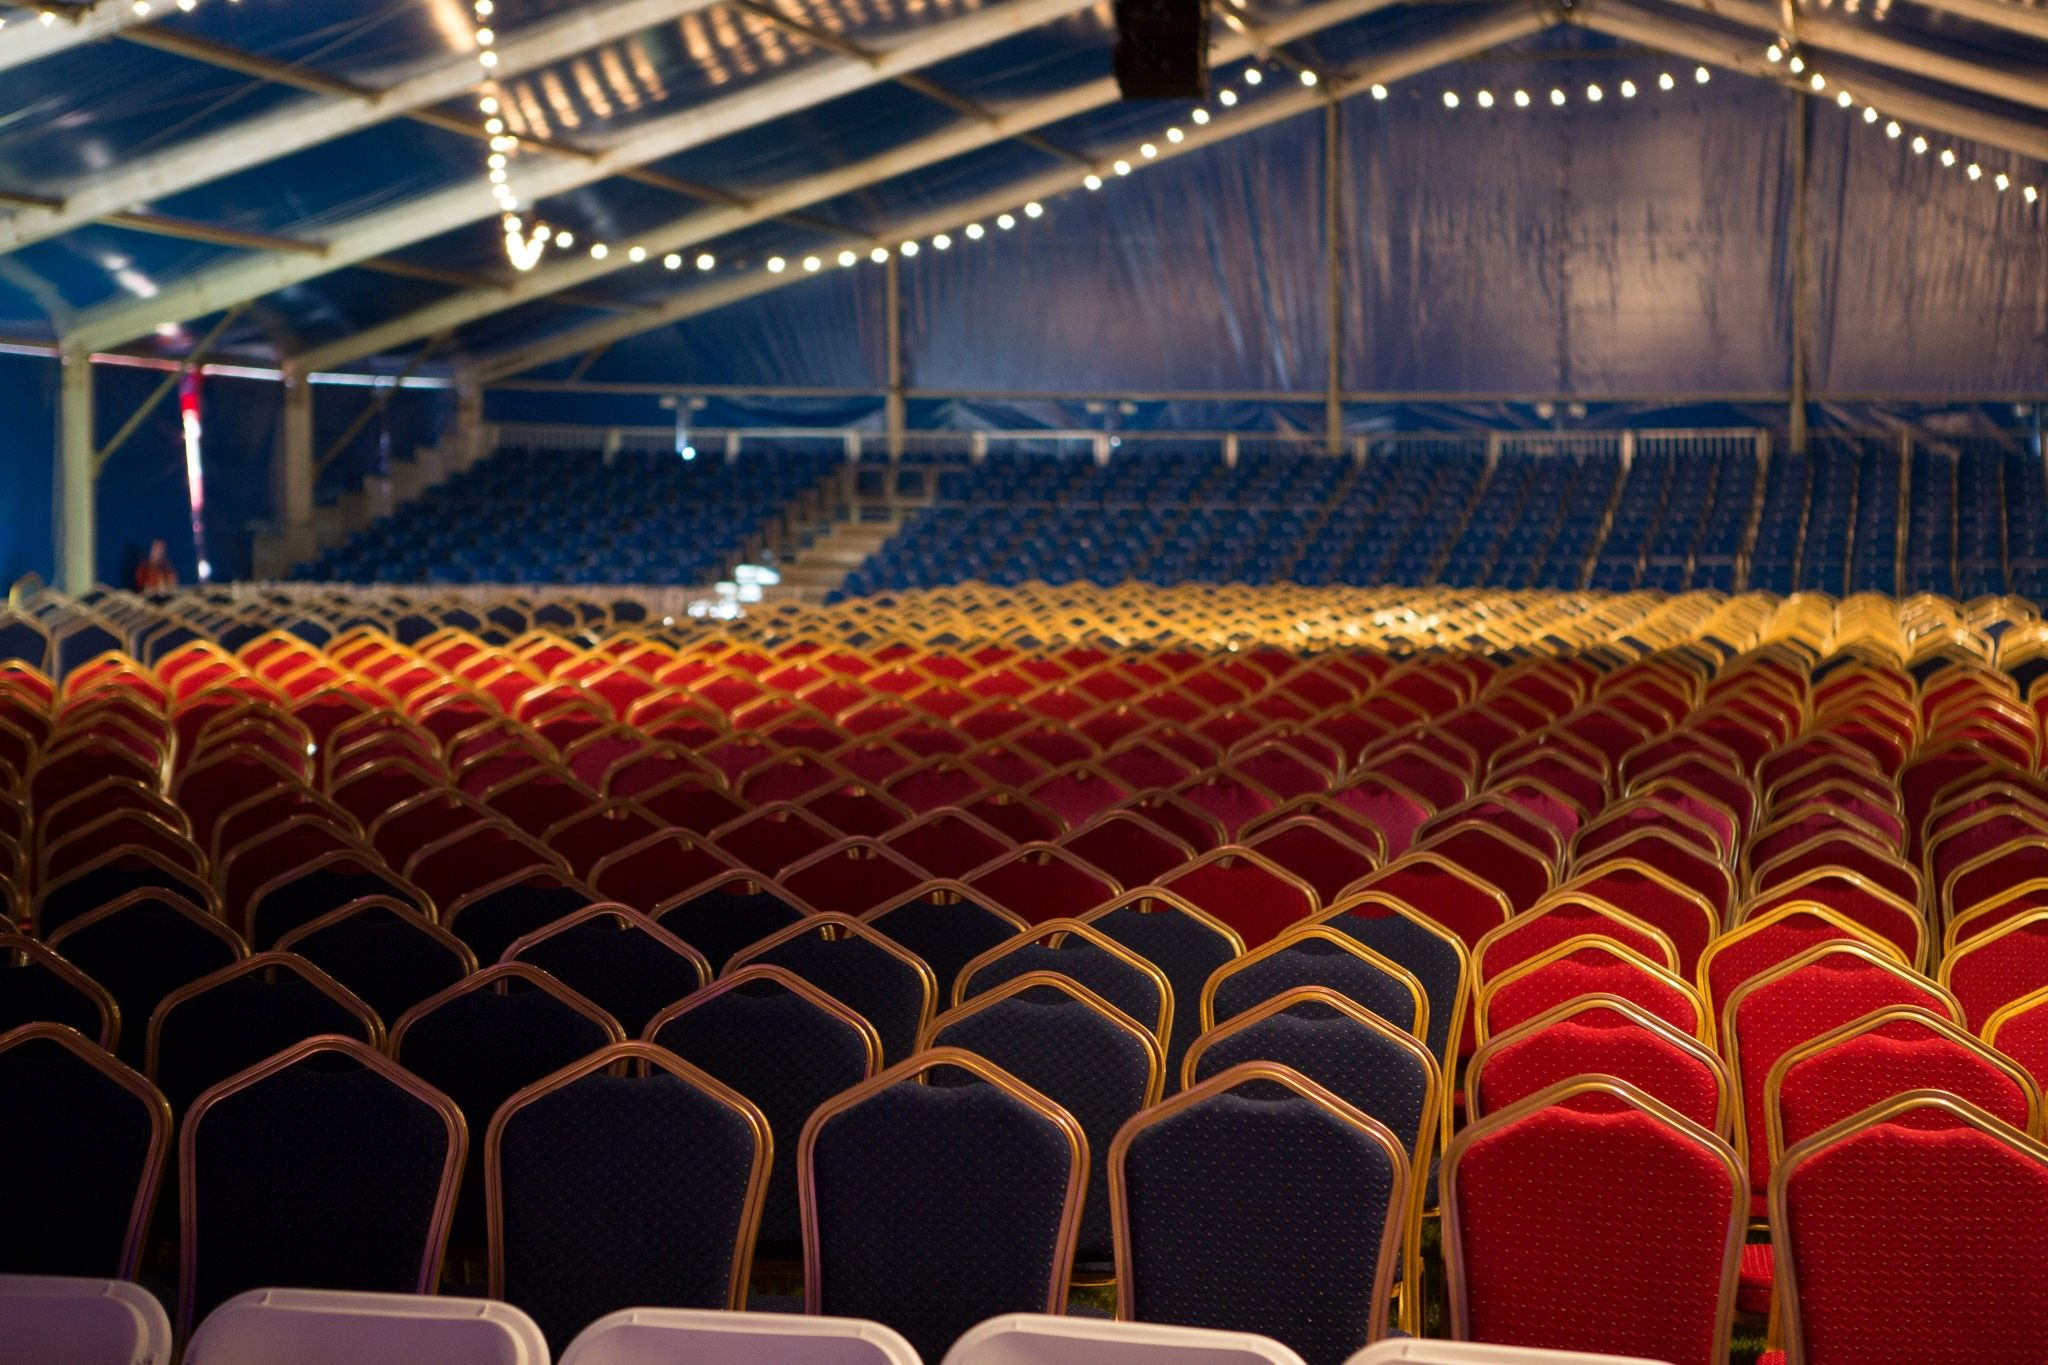 Our Emperor Banqueting Chairs in red and blue used for